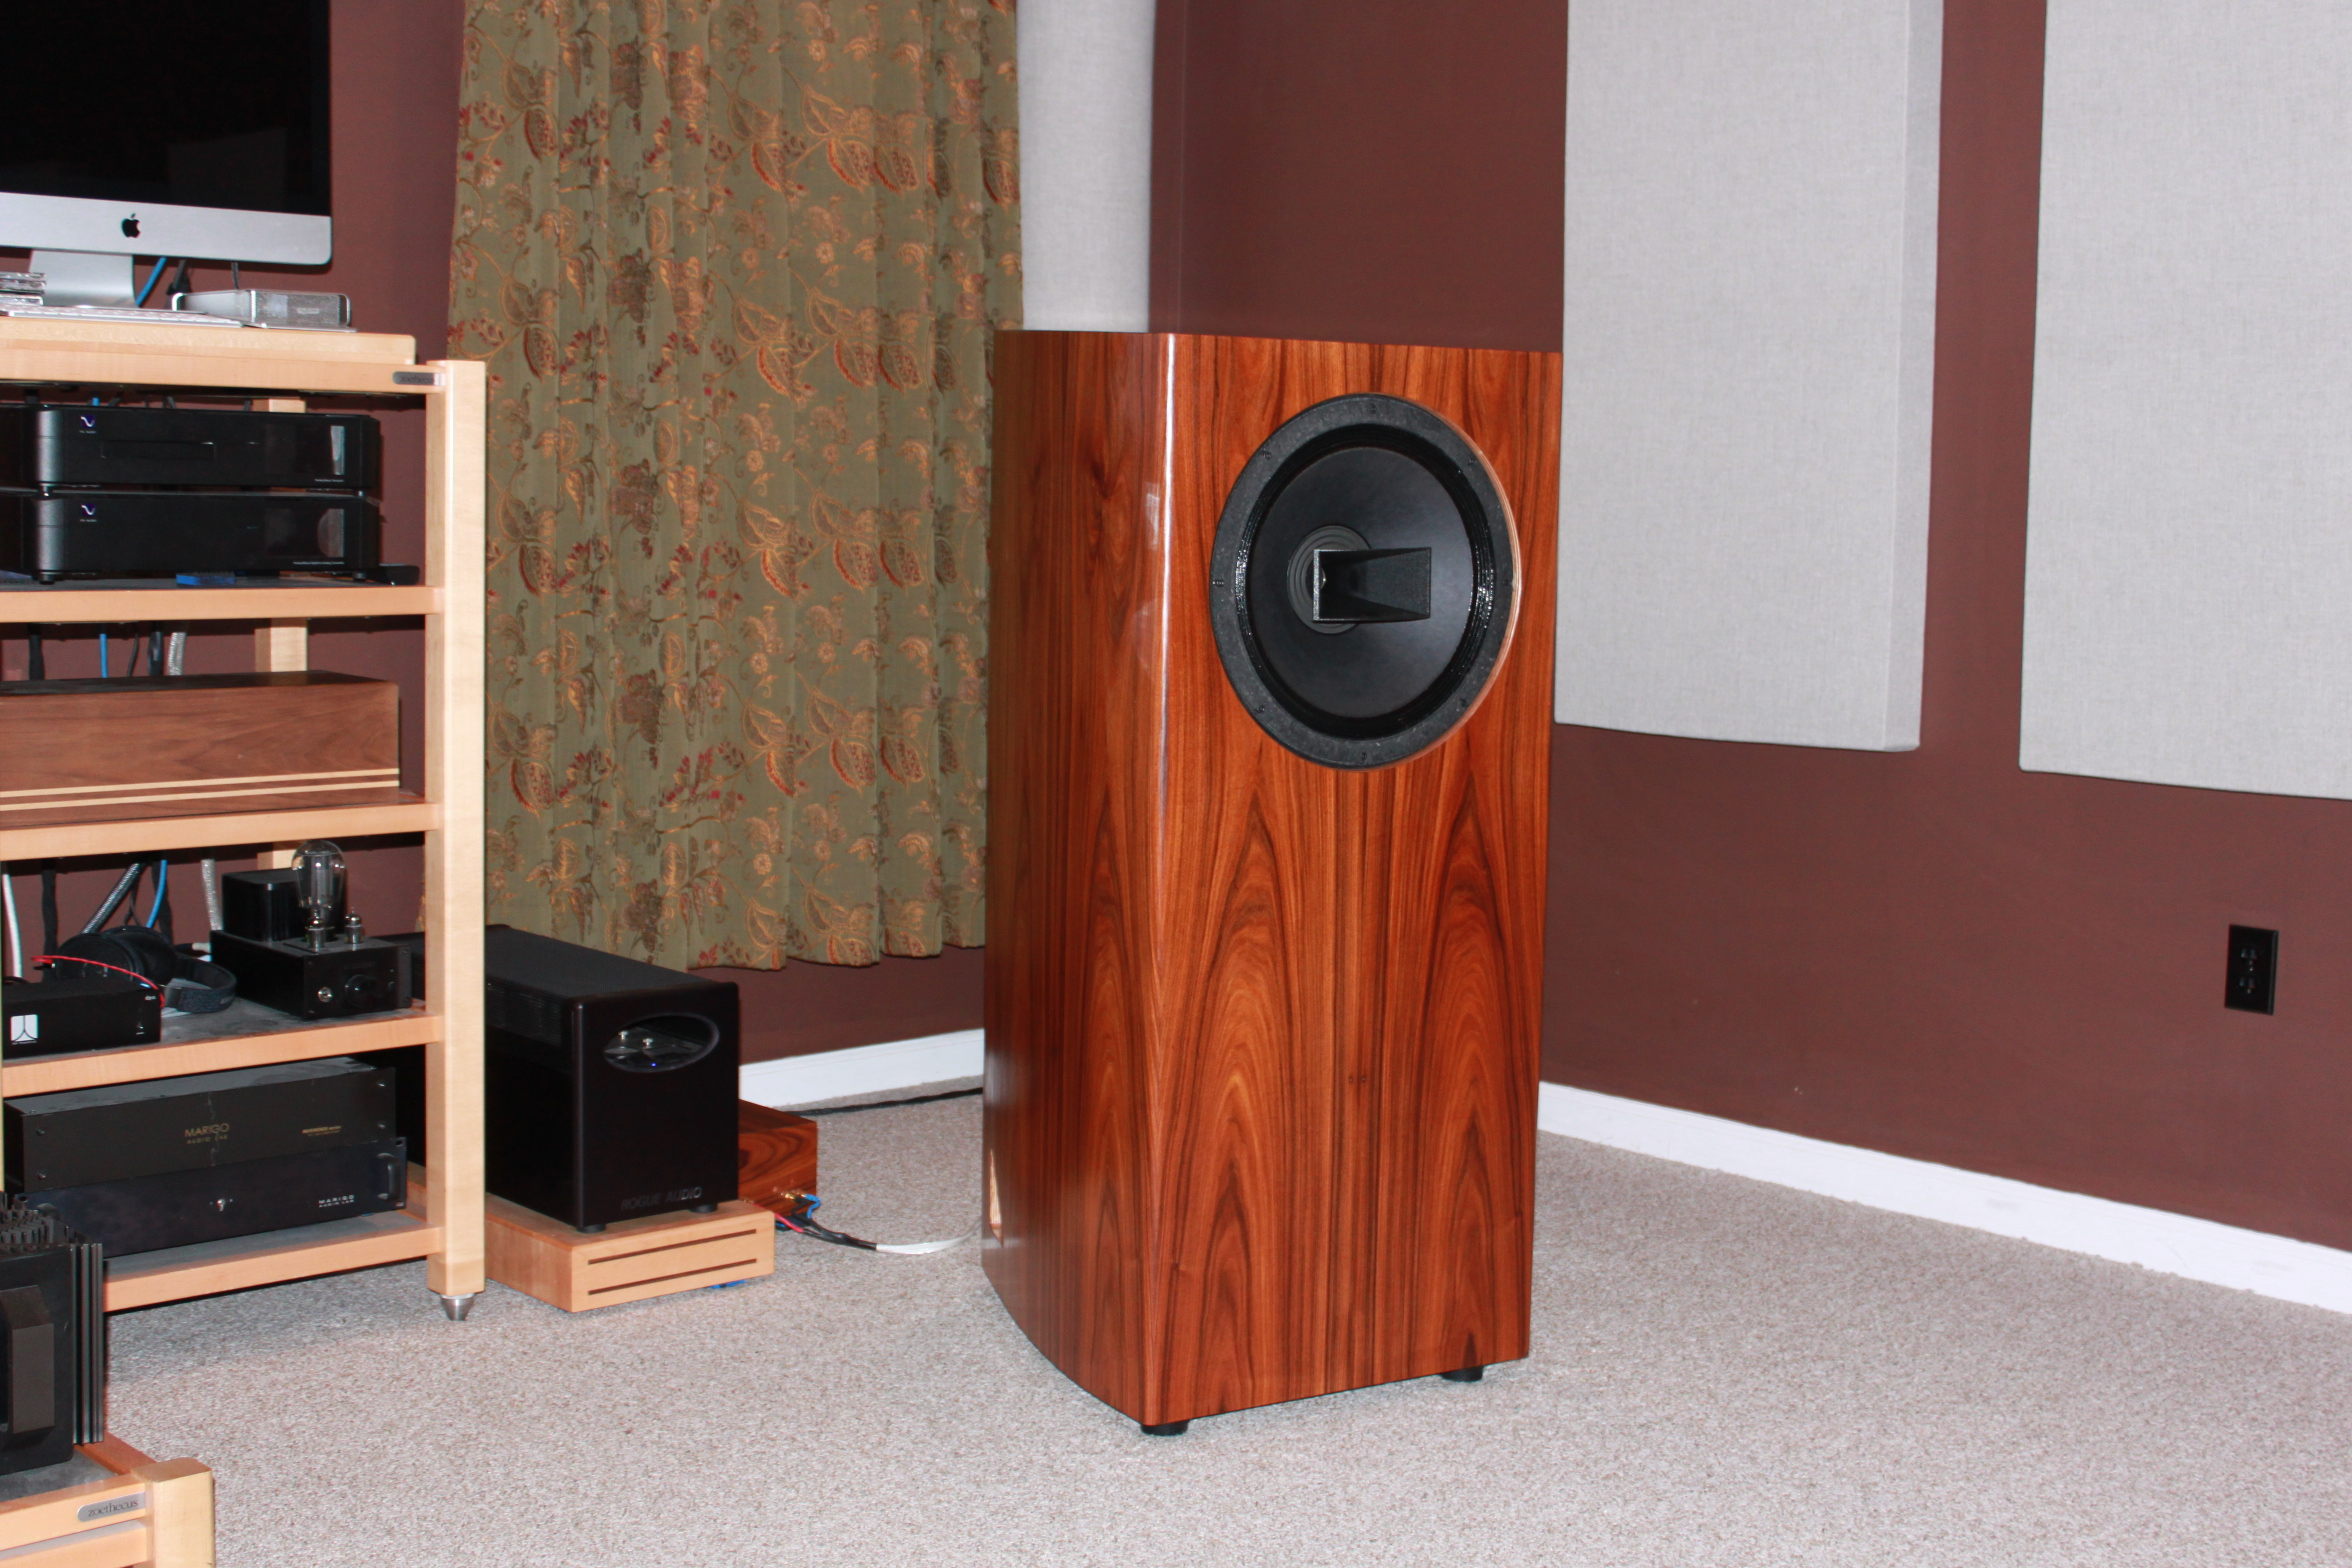 Cane Creek AV Model 1 Speaker System